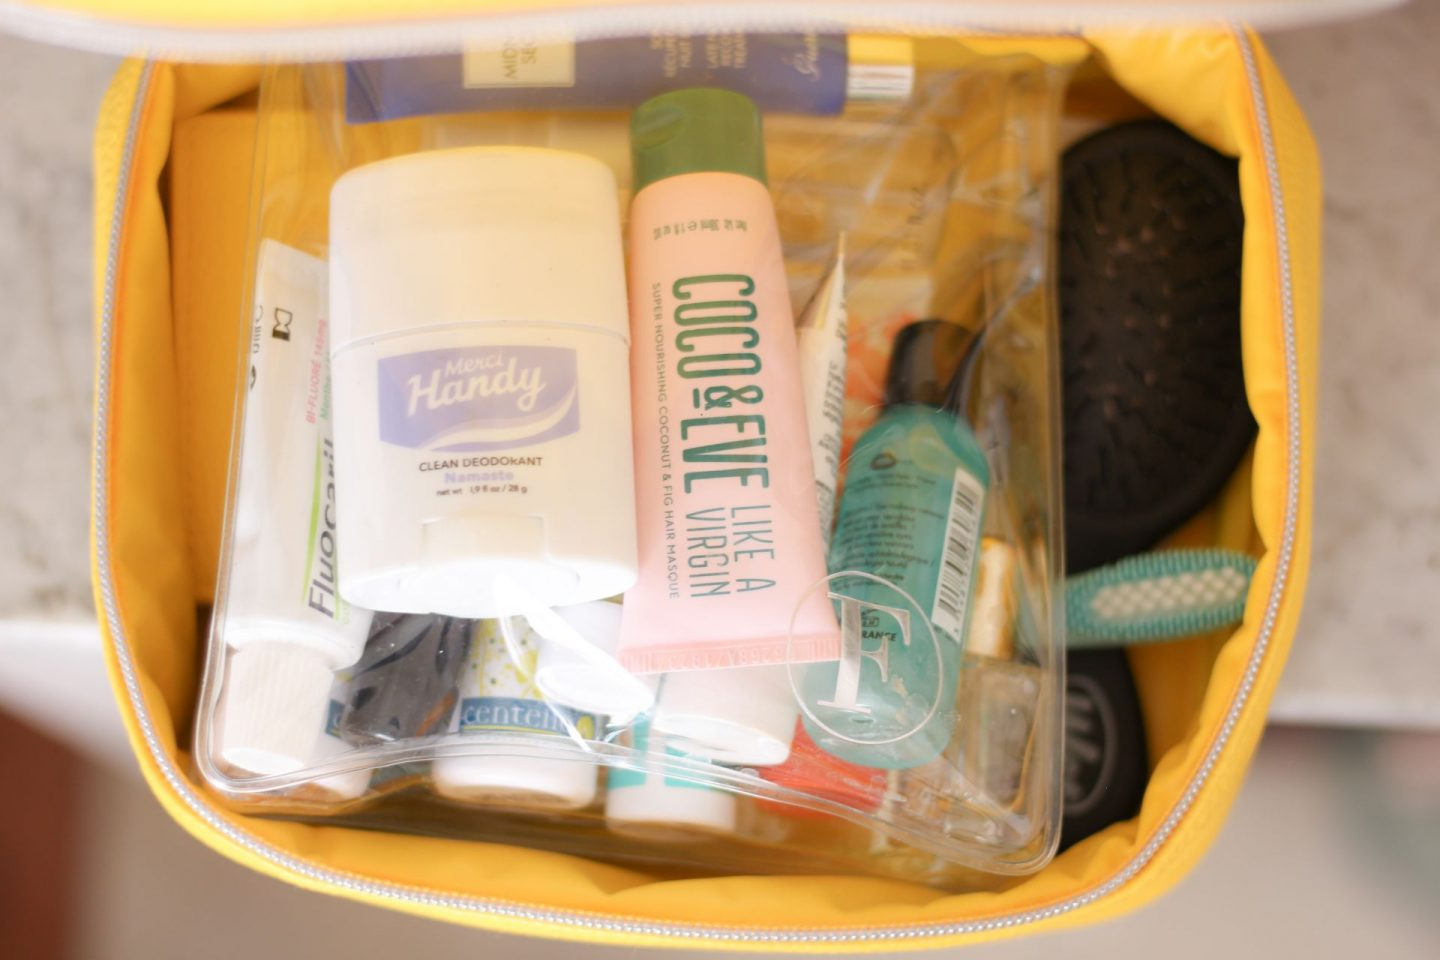 cosmetics to take on holiday